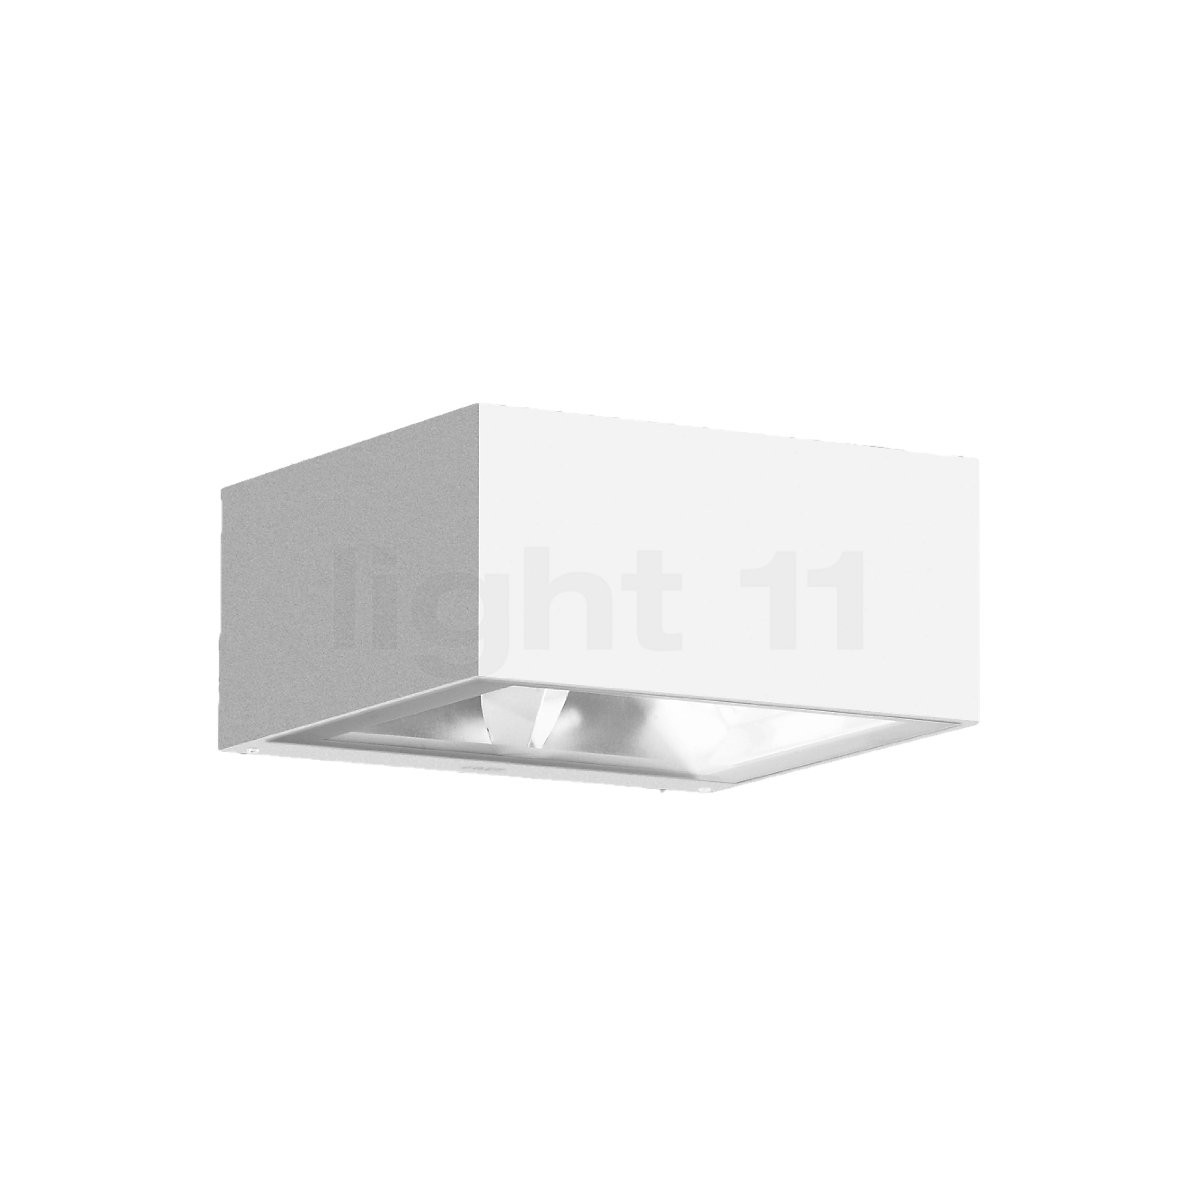 Bega 22383 Applique murale LED en vente sur